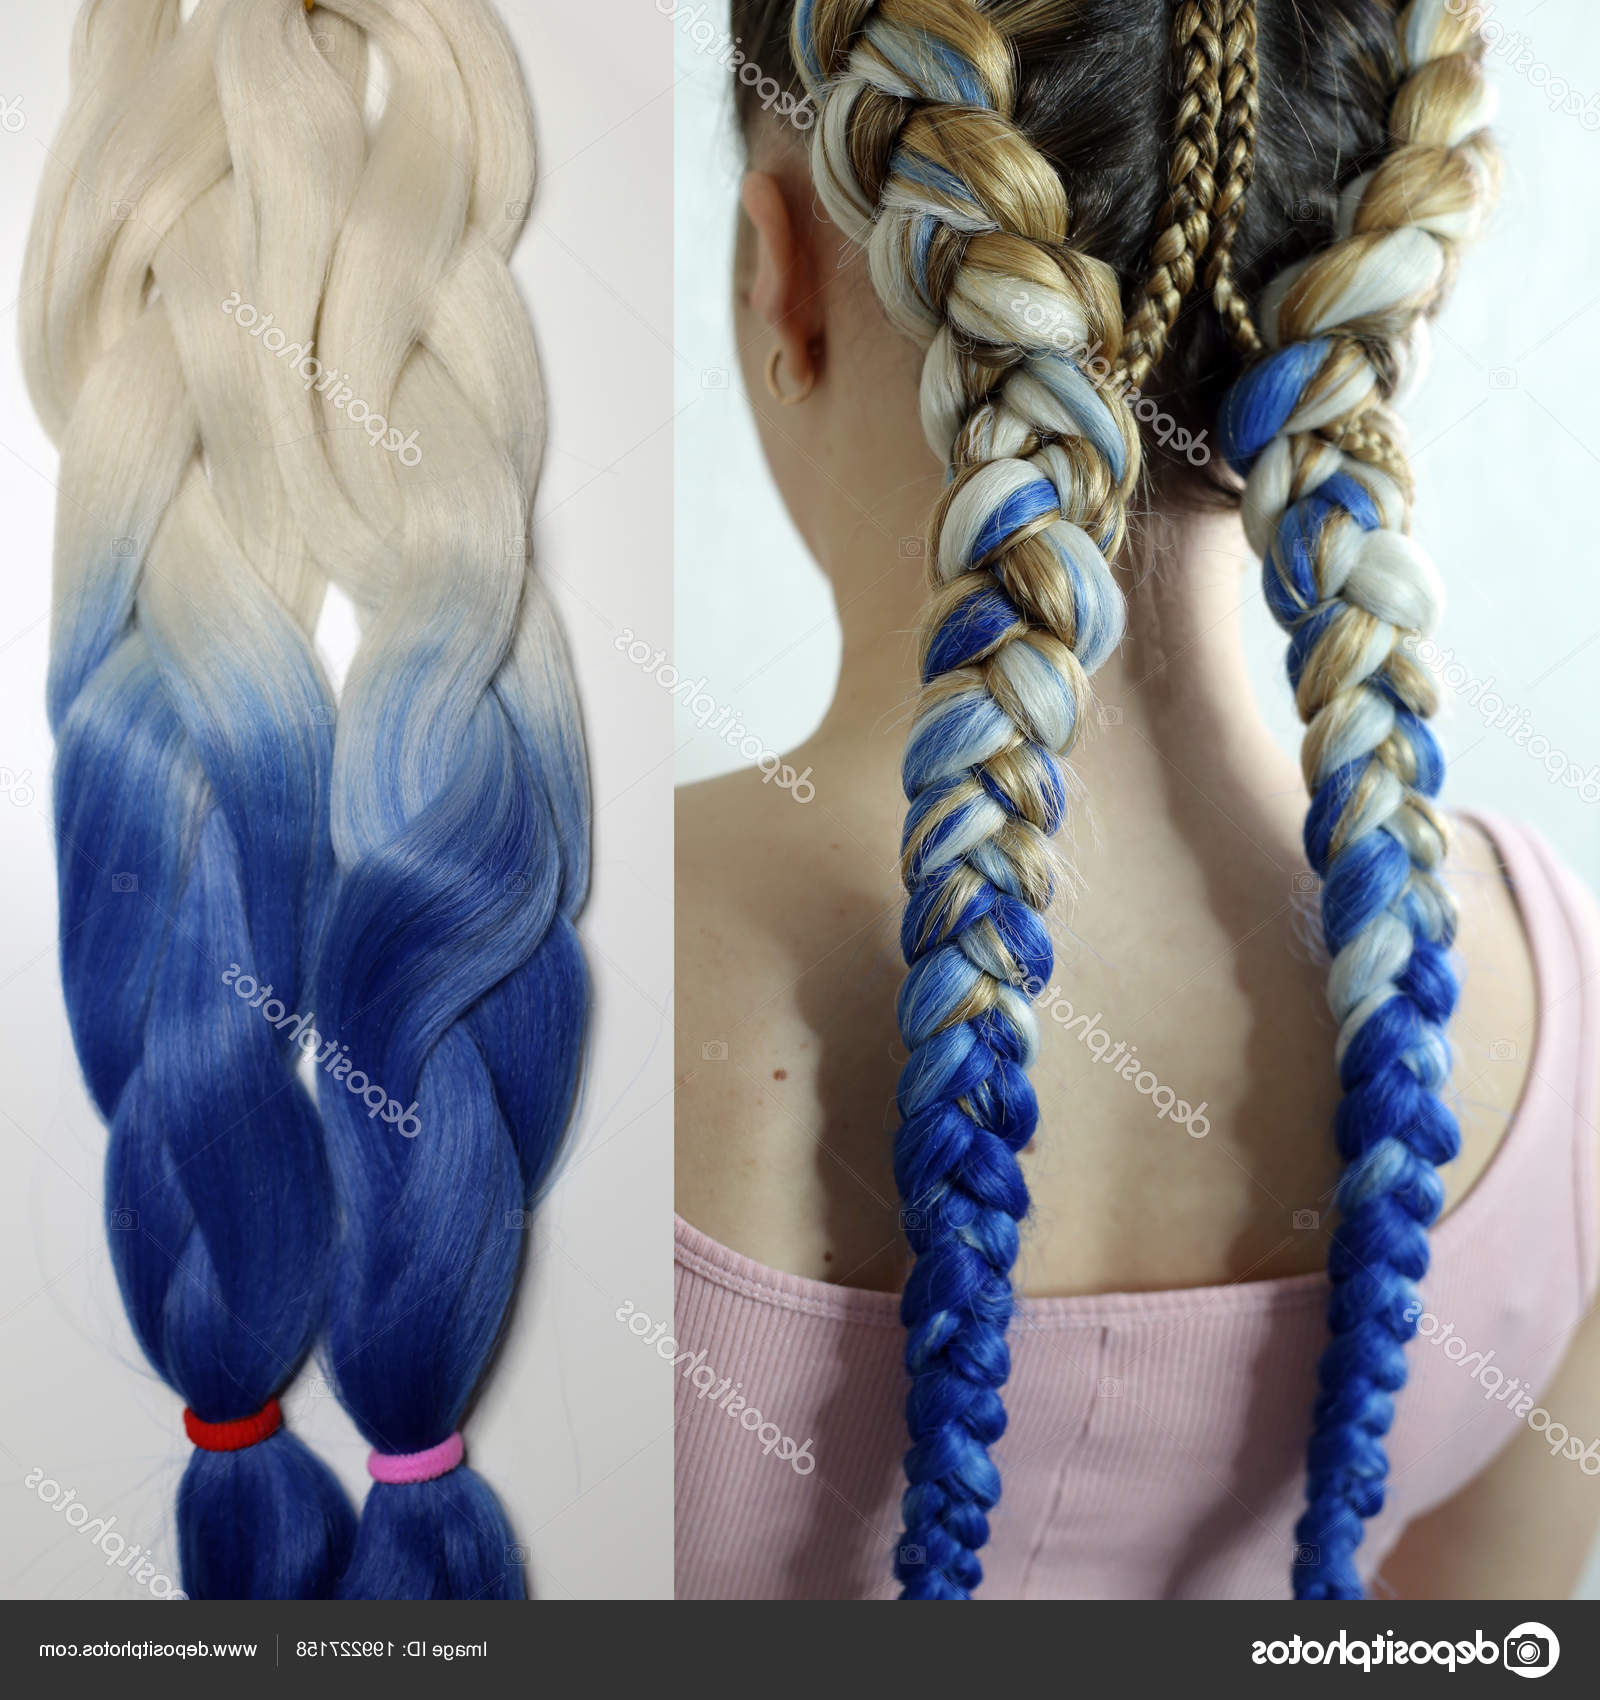 Colored Hair Artificial Material Braiding American African With Regard To 2019 Whirlpool Braid Hairstyles (View 5 of 20)